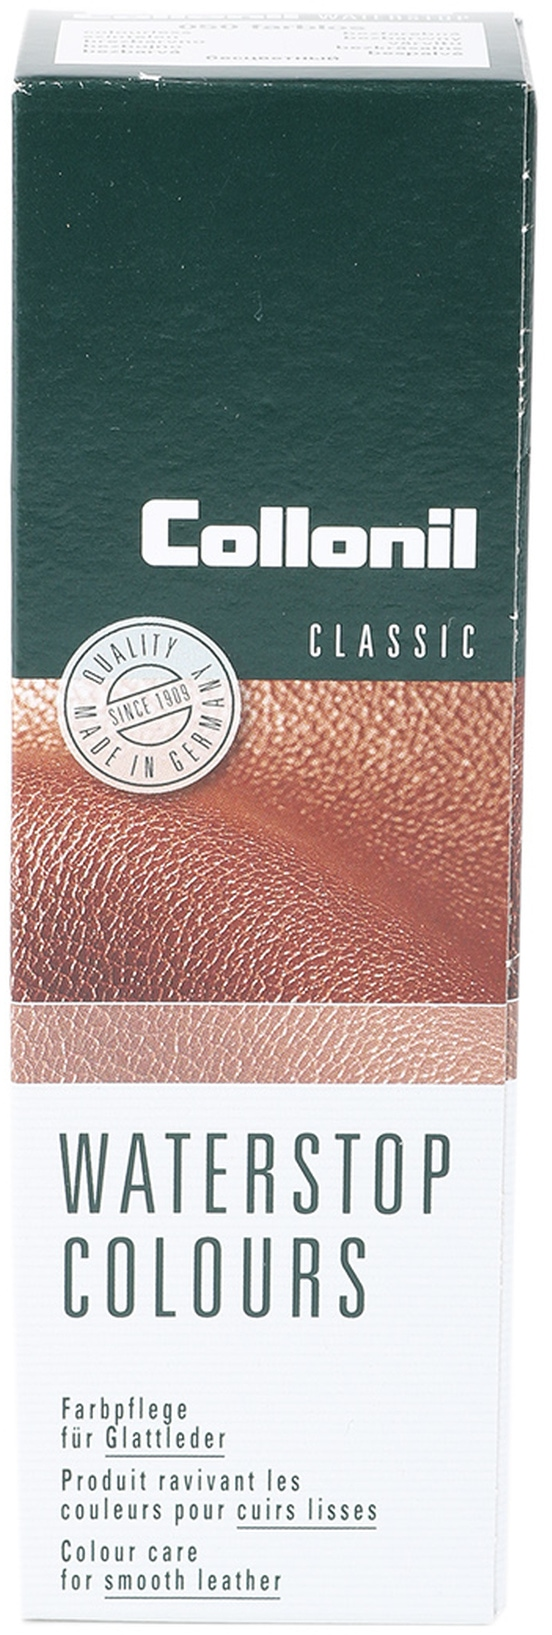 Collonil Waterstop Leather Cream Ocean foto 0